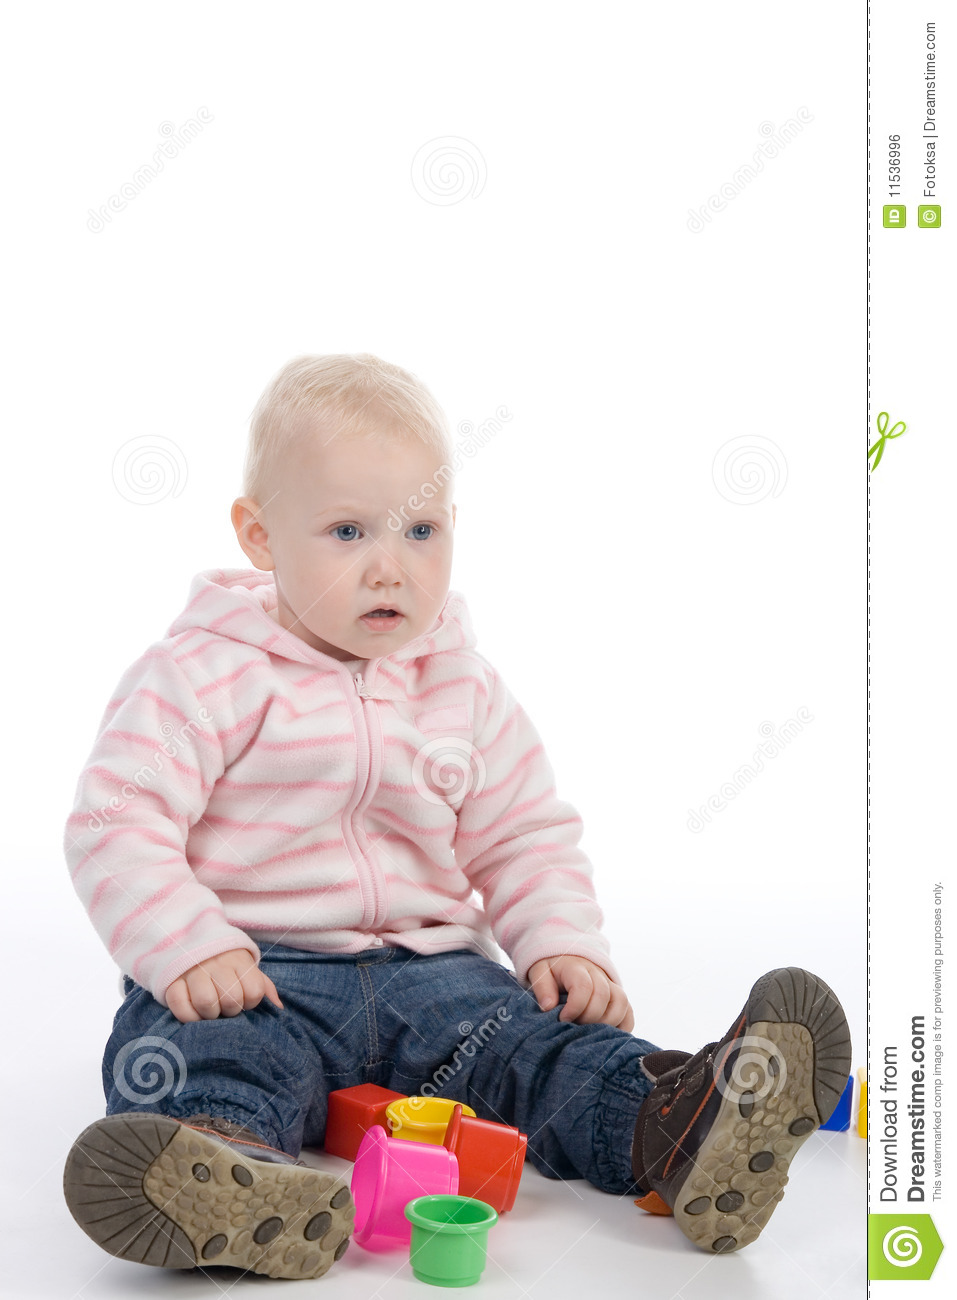 Little Girl Toys : Little girl with toys stock photo image of people